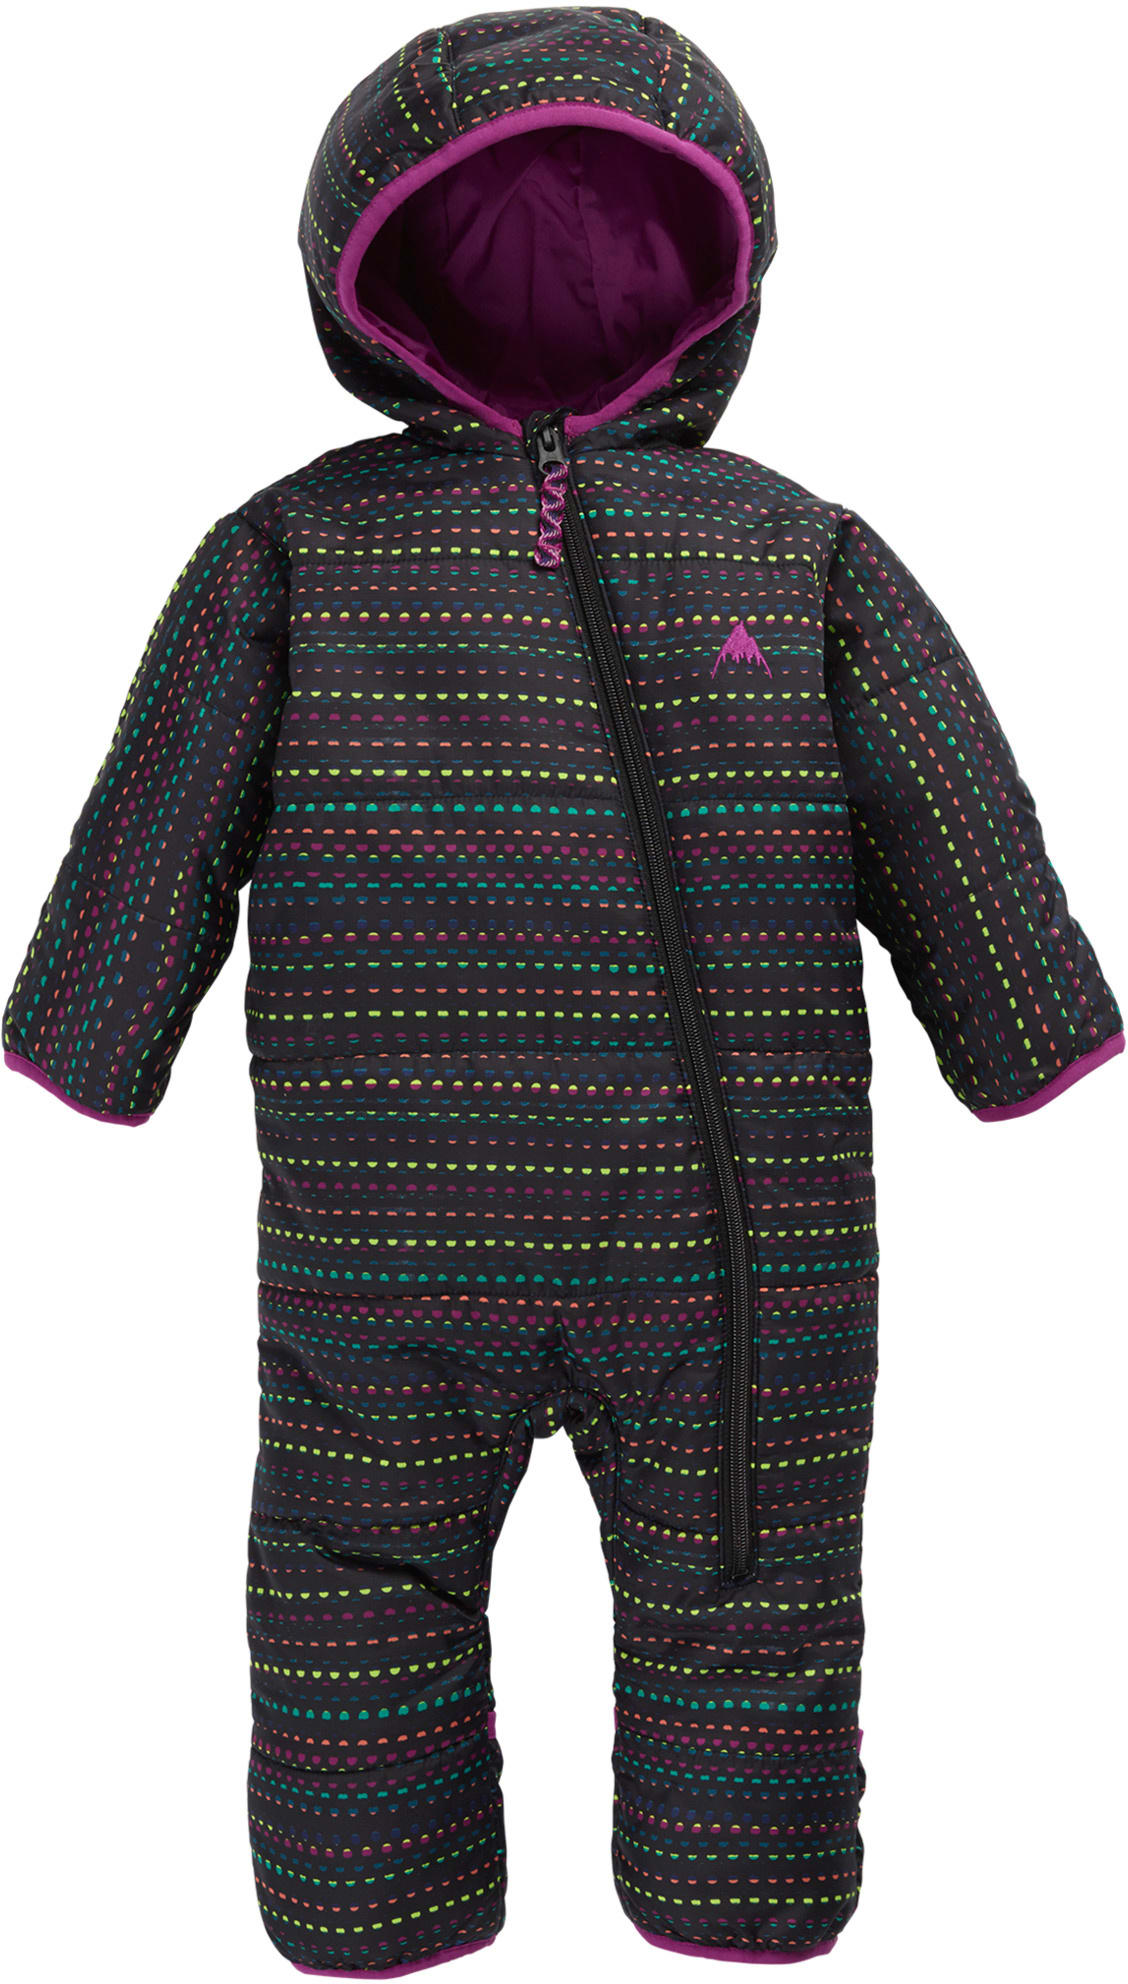 45832fdae Burton Minishred Infant Buddy Bunting Snow Suit - Kids